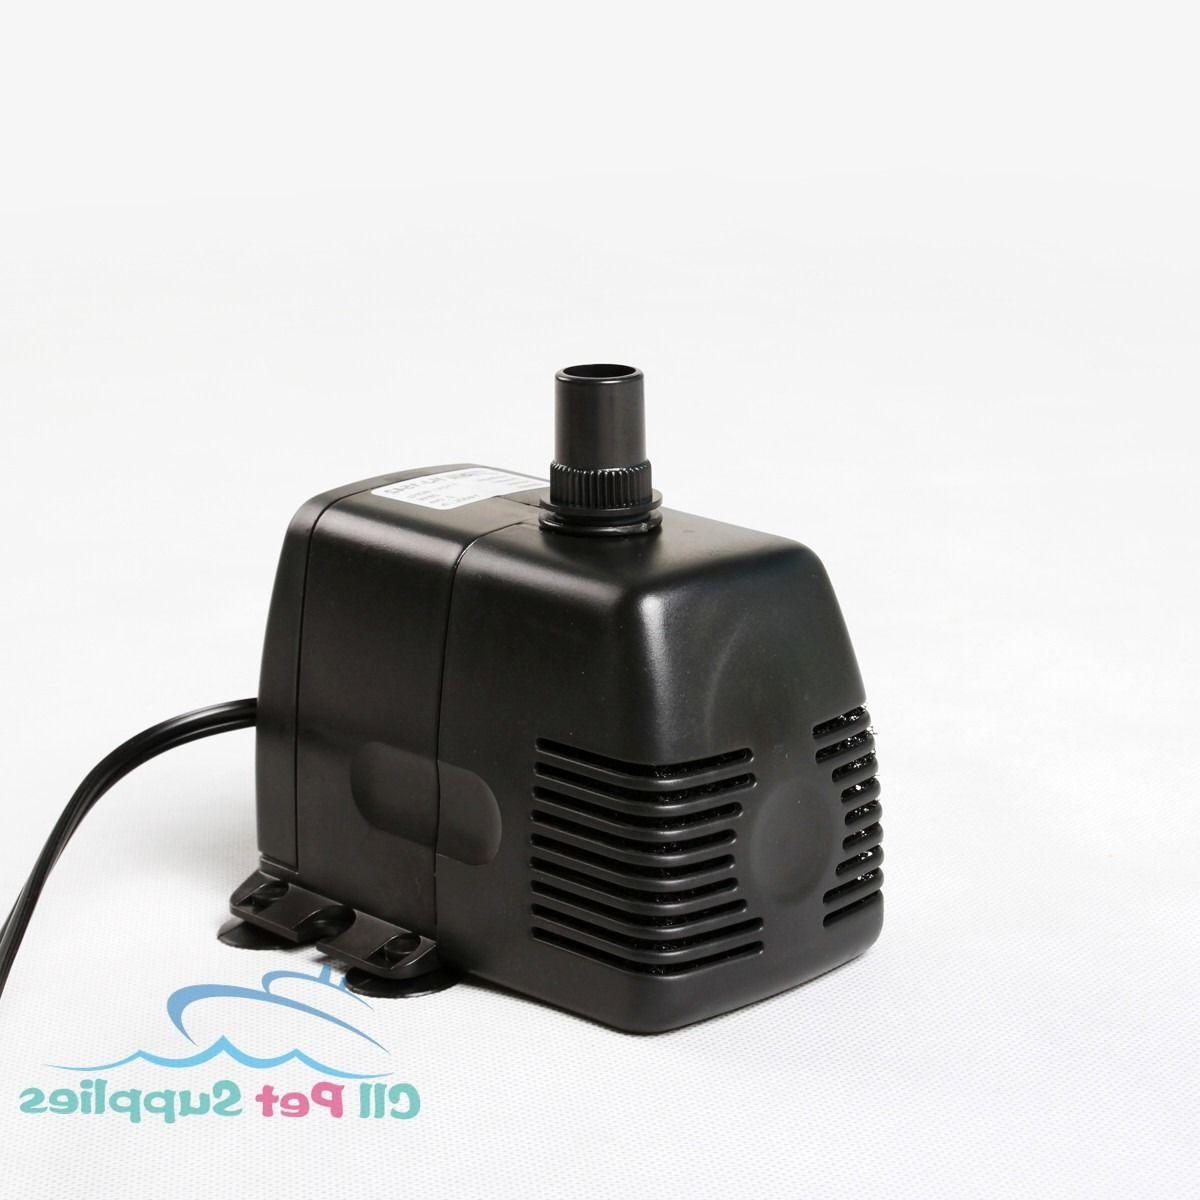 53 - Submersible Pump Fish Tank Fountain